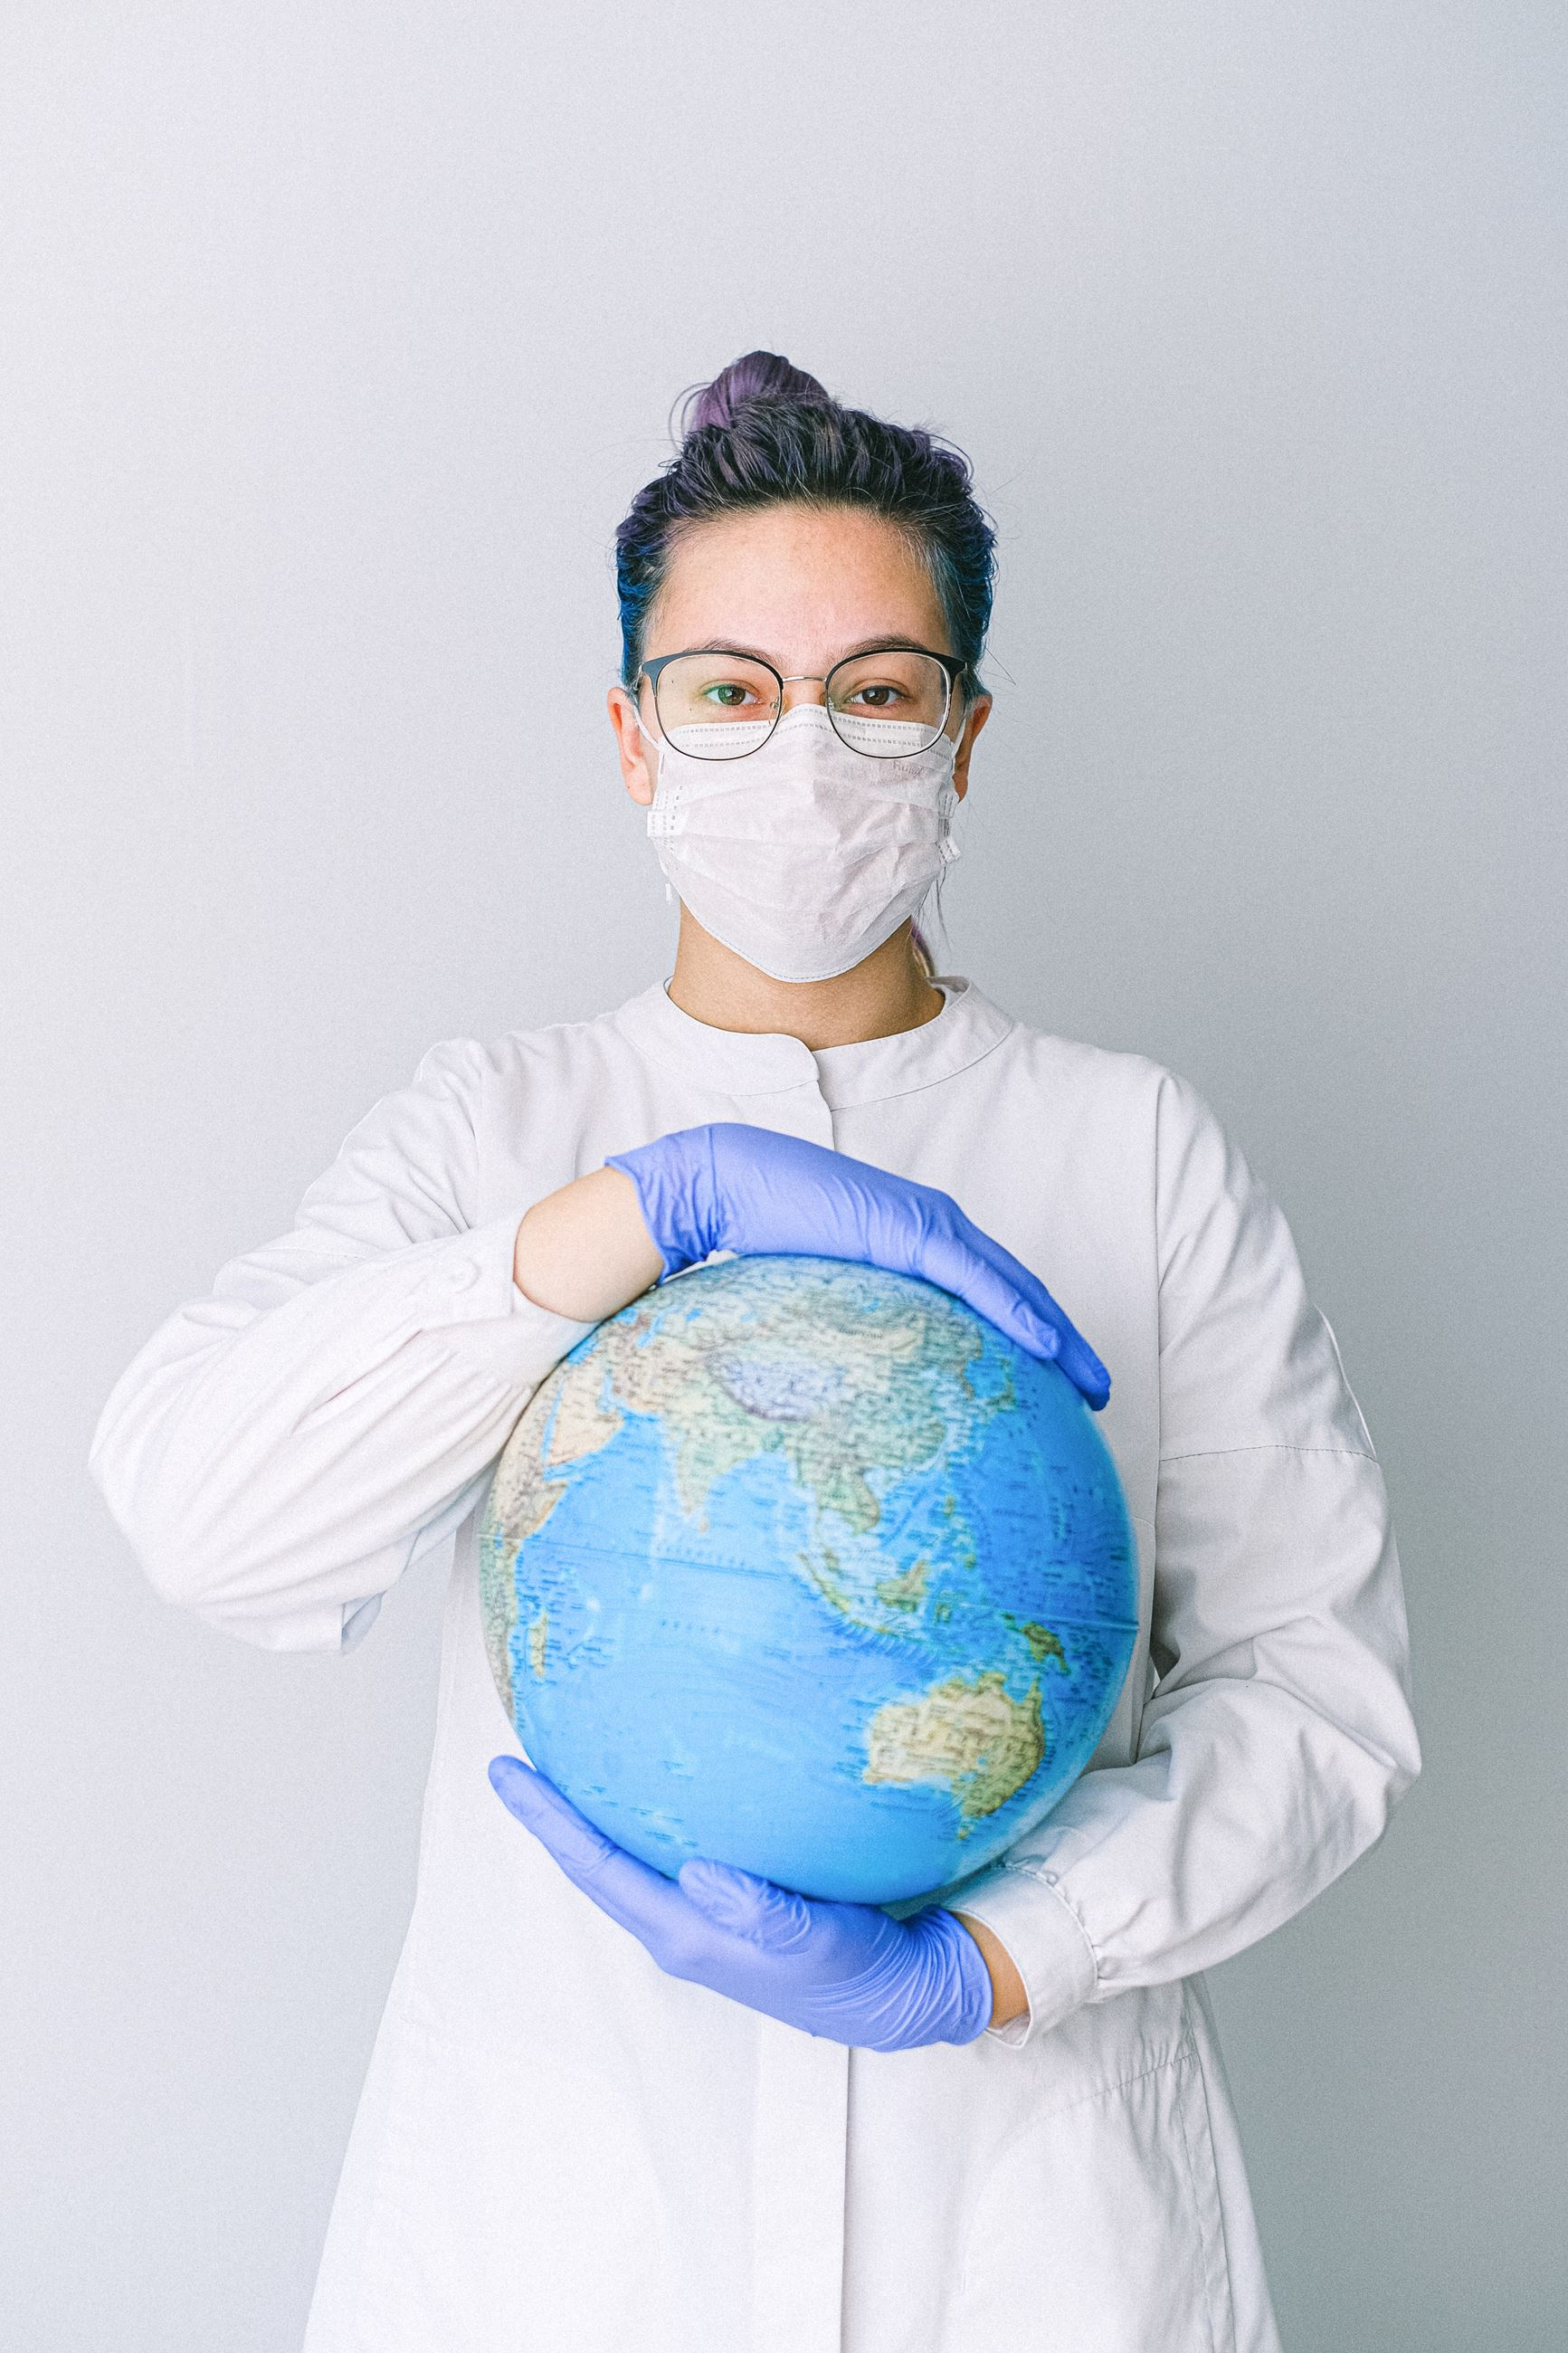 person-with-a-face-mask-and-latex-gloves-holding-a-globe-4167542